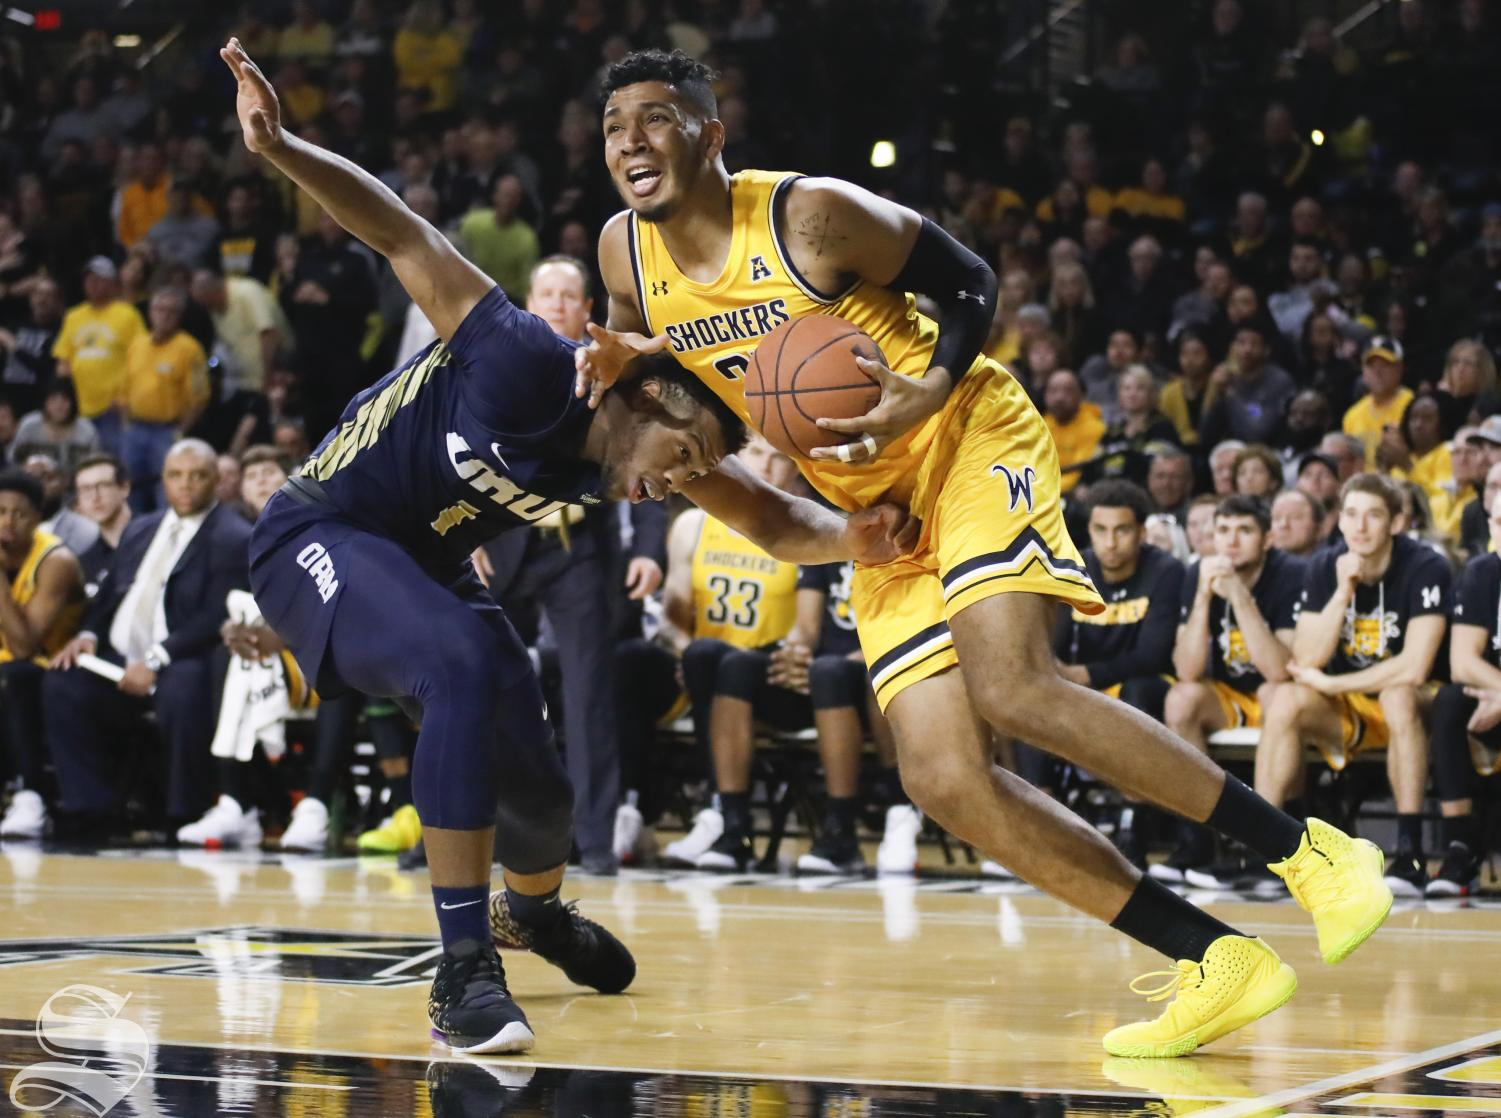 Wichita State senior Jaime Echenique is fouled by Oral Roberts redshirt sophomore Elijah Lufile in the second half at Charles Koch Arena Saturday, Nov. 23, 2019.